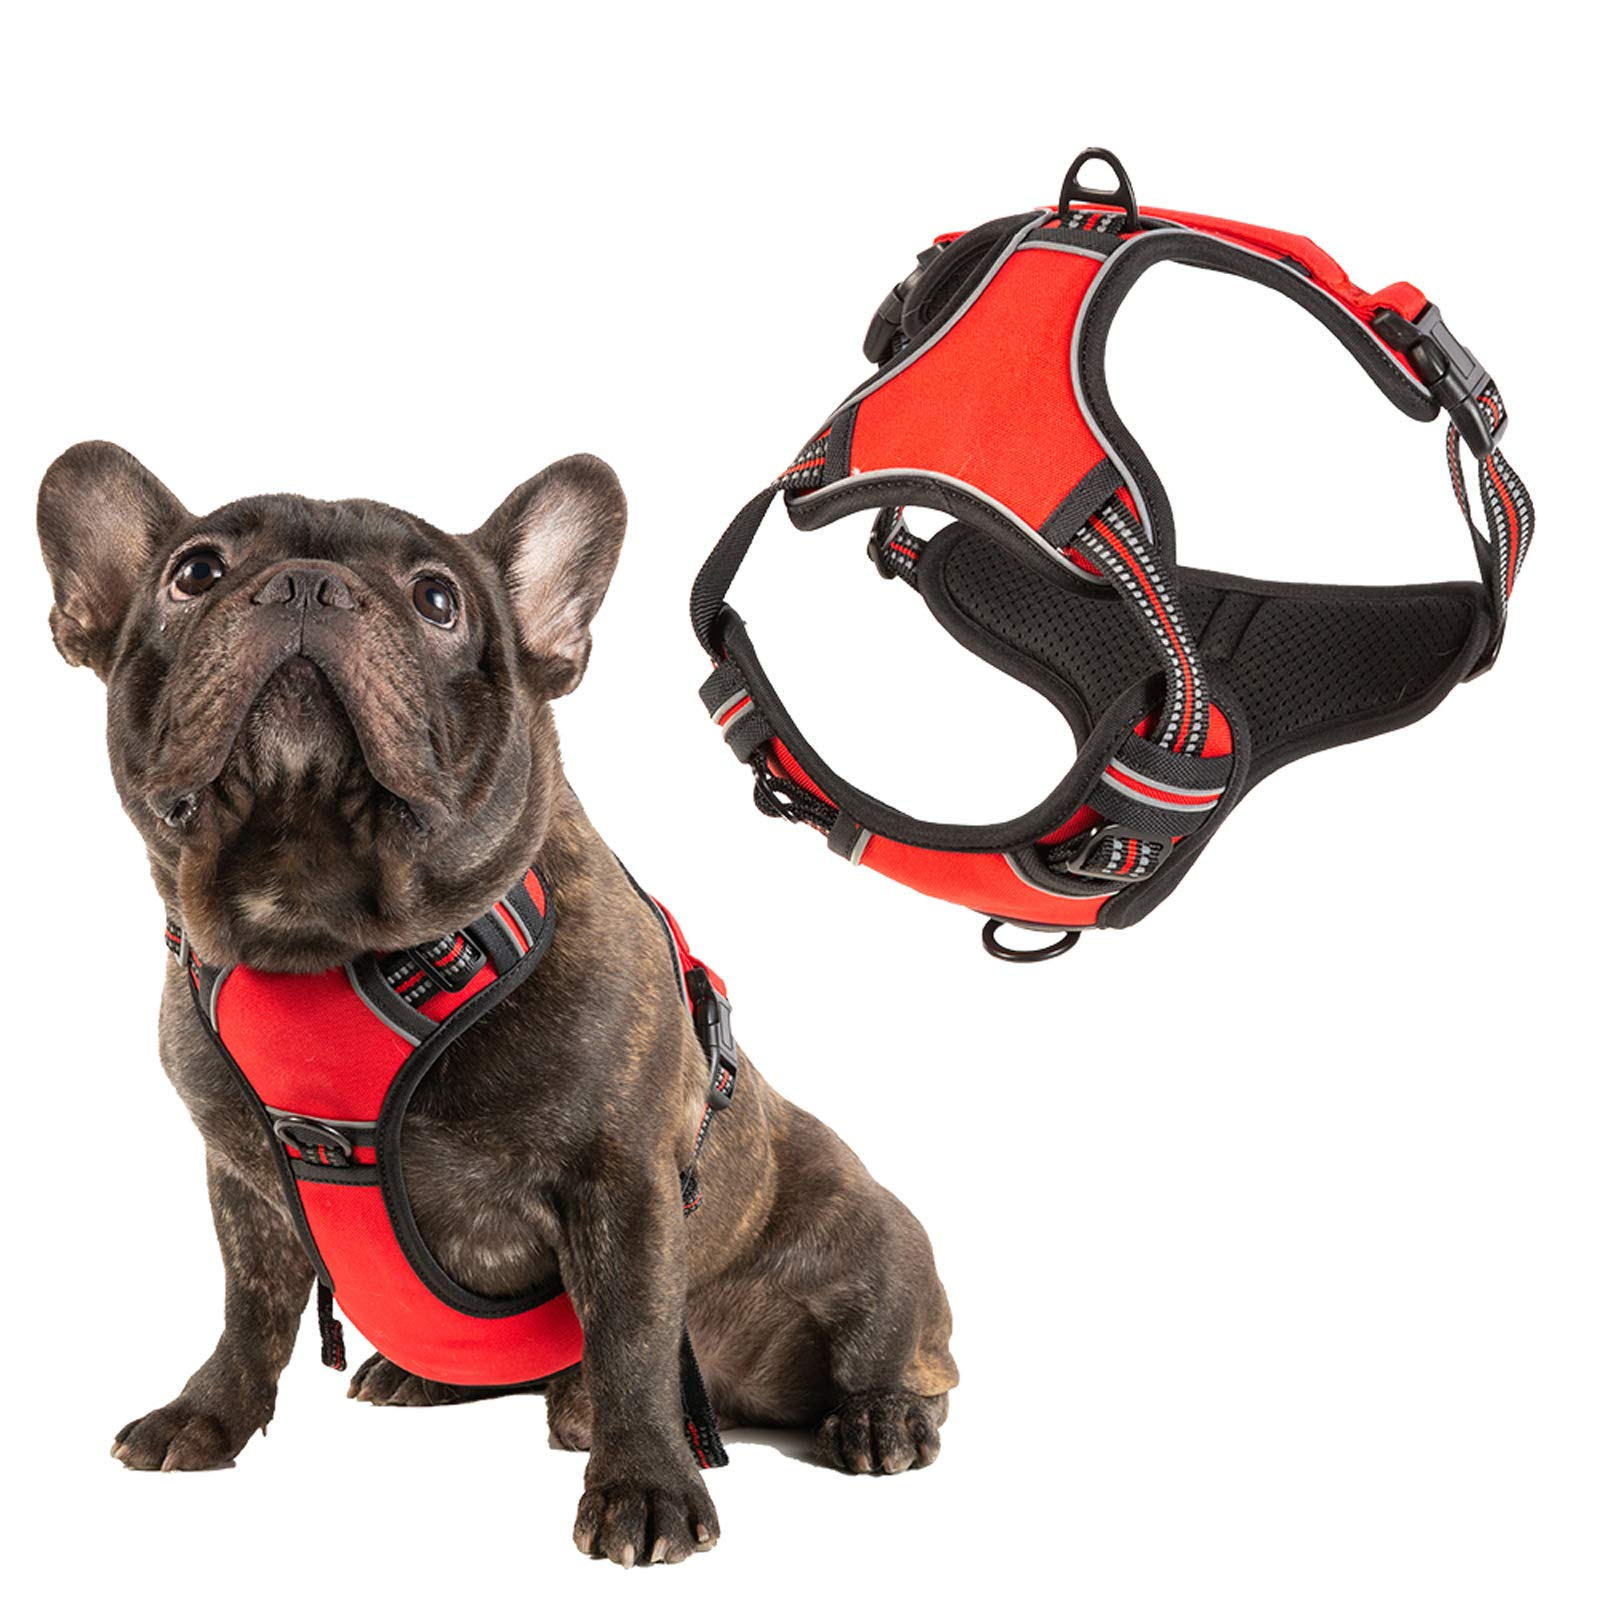 Petchron No Pull Dog Harness Adjustable Reflective Oxford Dog Vest with Easy Control Handle for Medium Dog(RED)